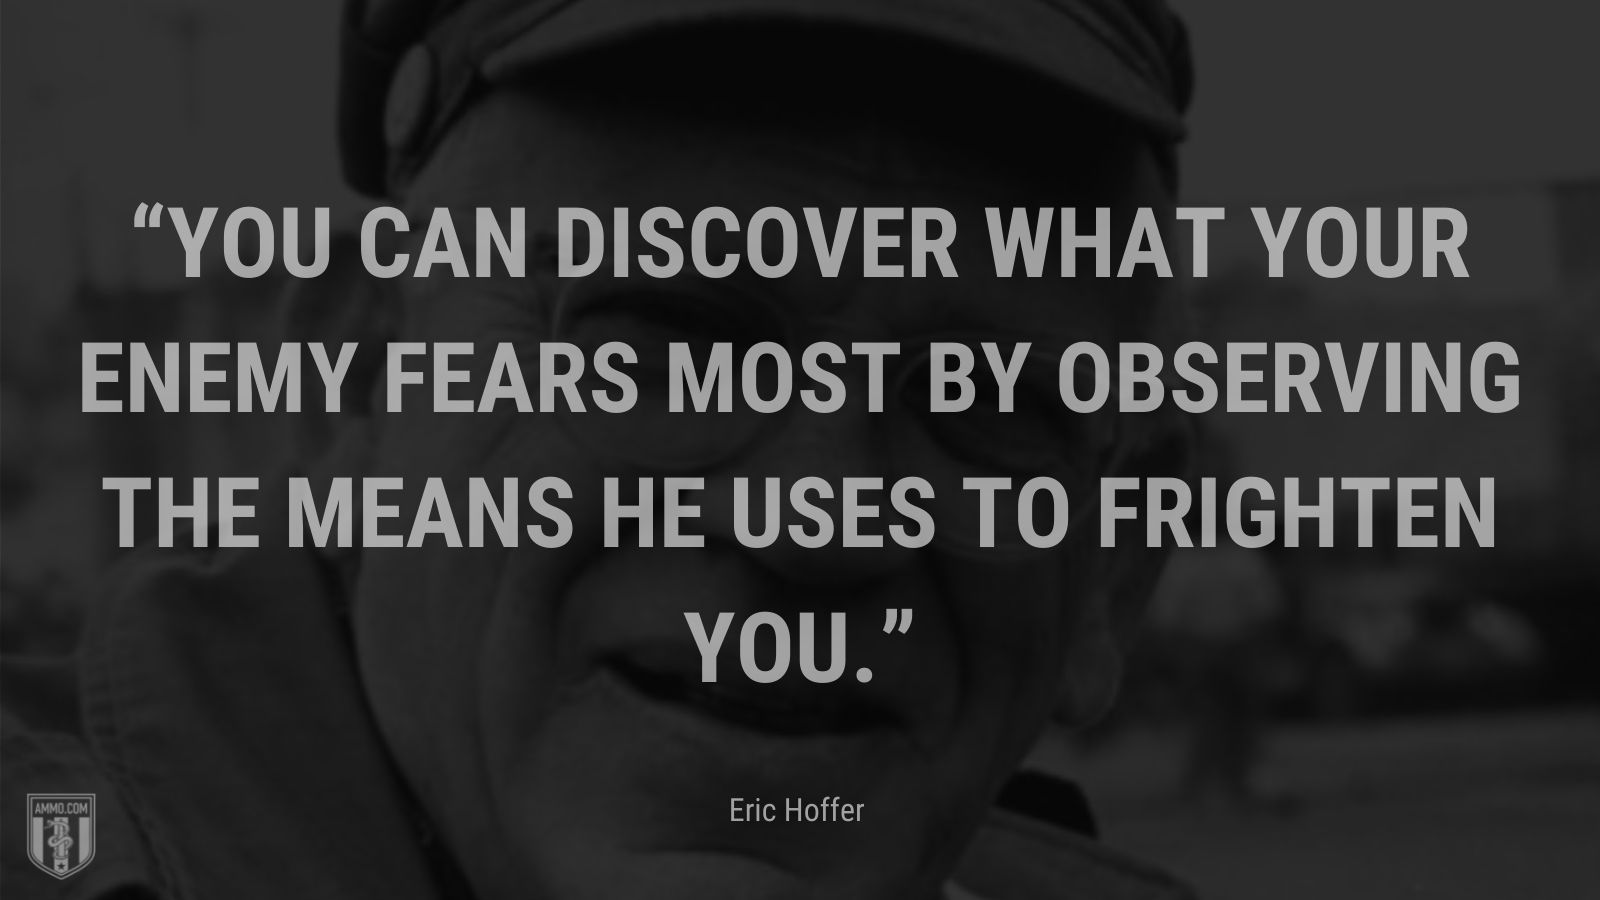 """""""You can discover what your enemy fears most by observing the means he uses to frighten you."""" - Eric Hoffer"""